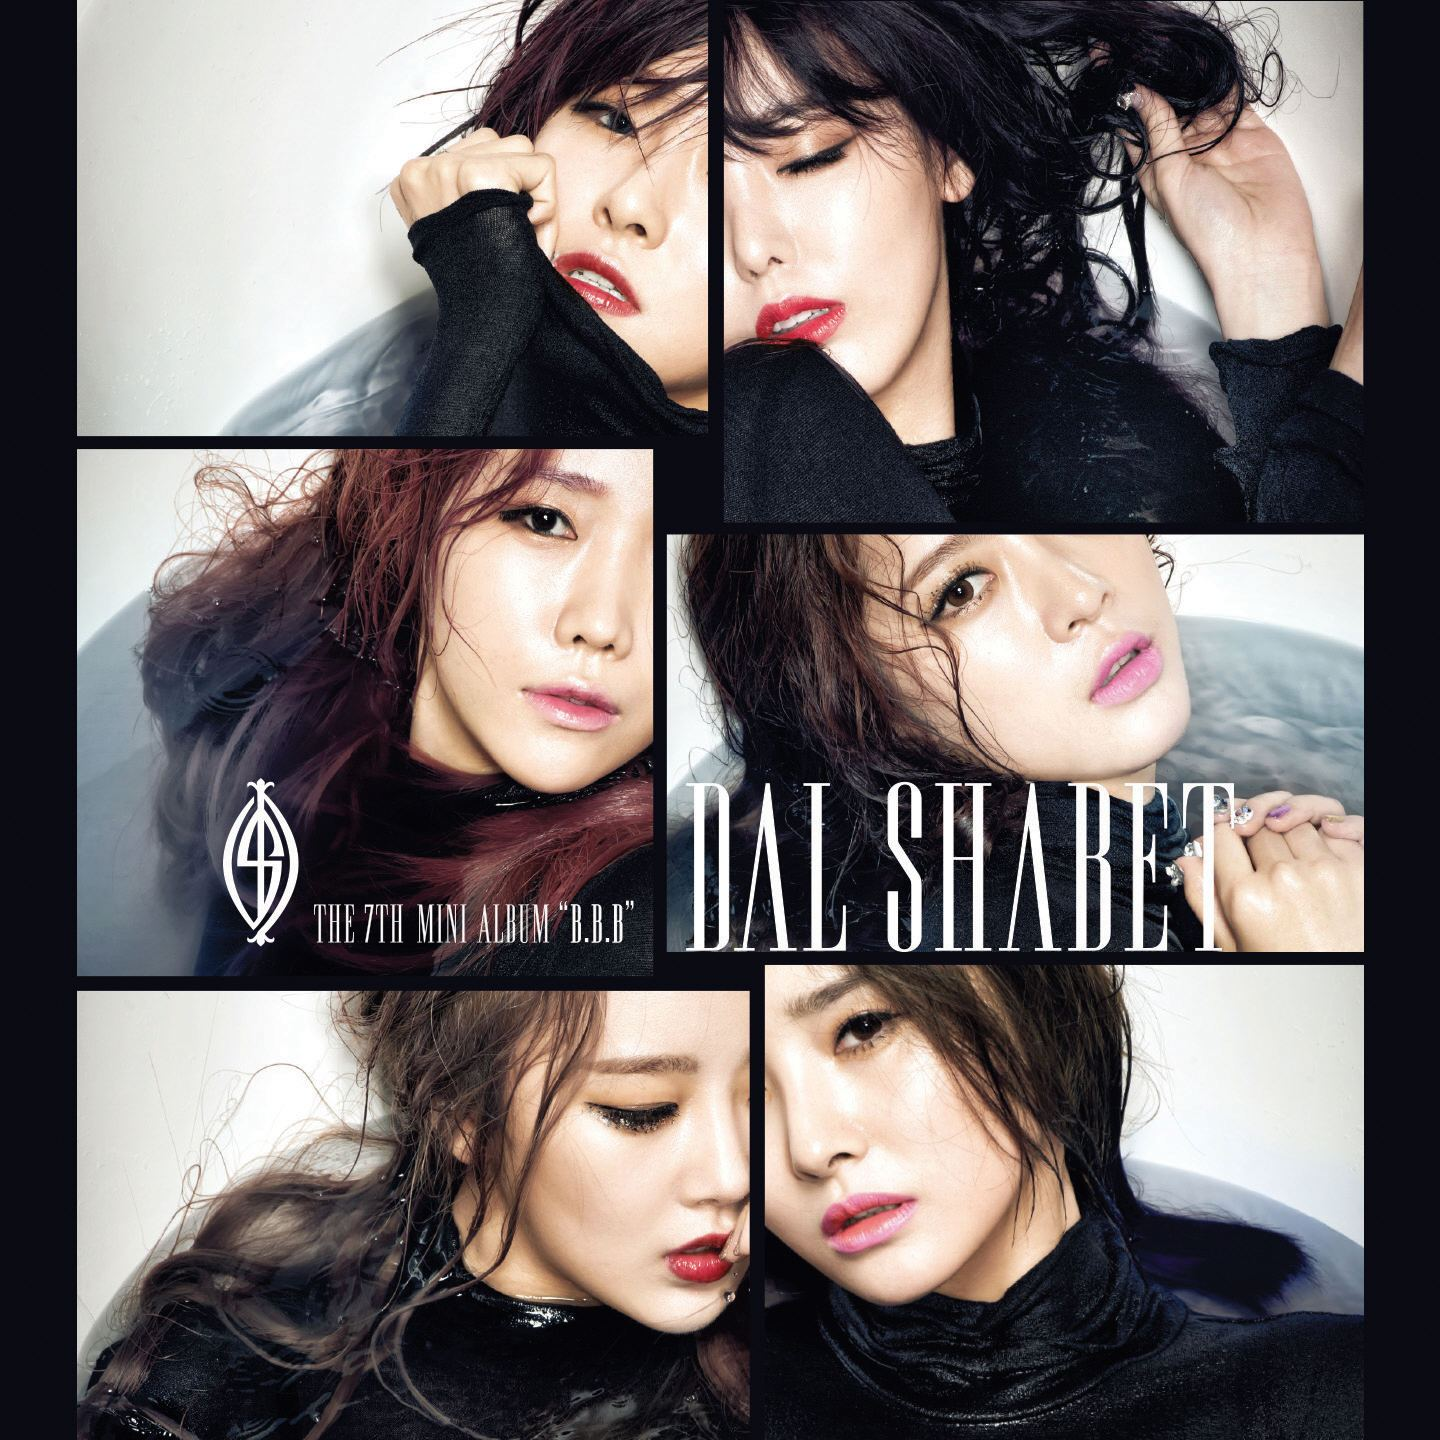 [Mini Album] DAL SHABET   B.B.B [The 7th Mini Album] (MP3 + iTunes Plus AAC M4A)